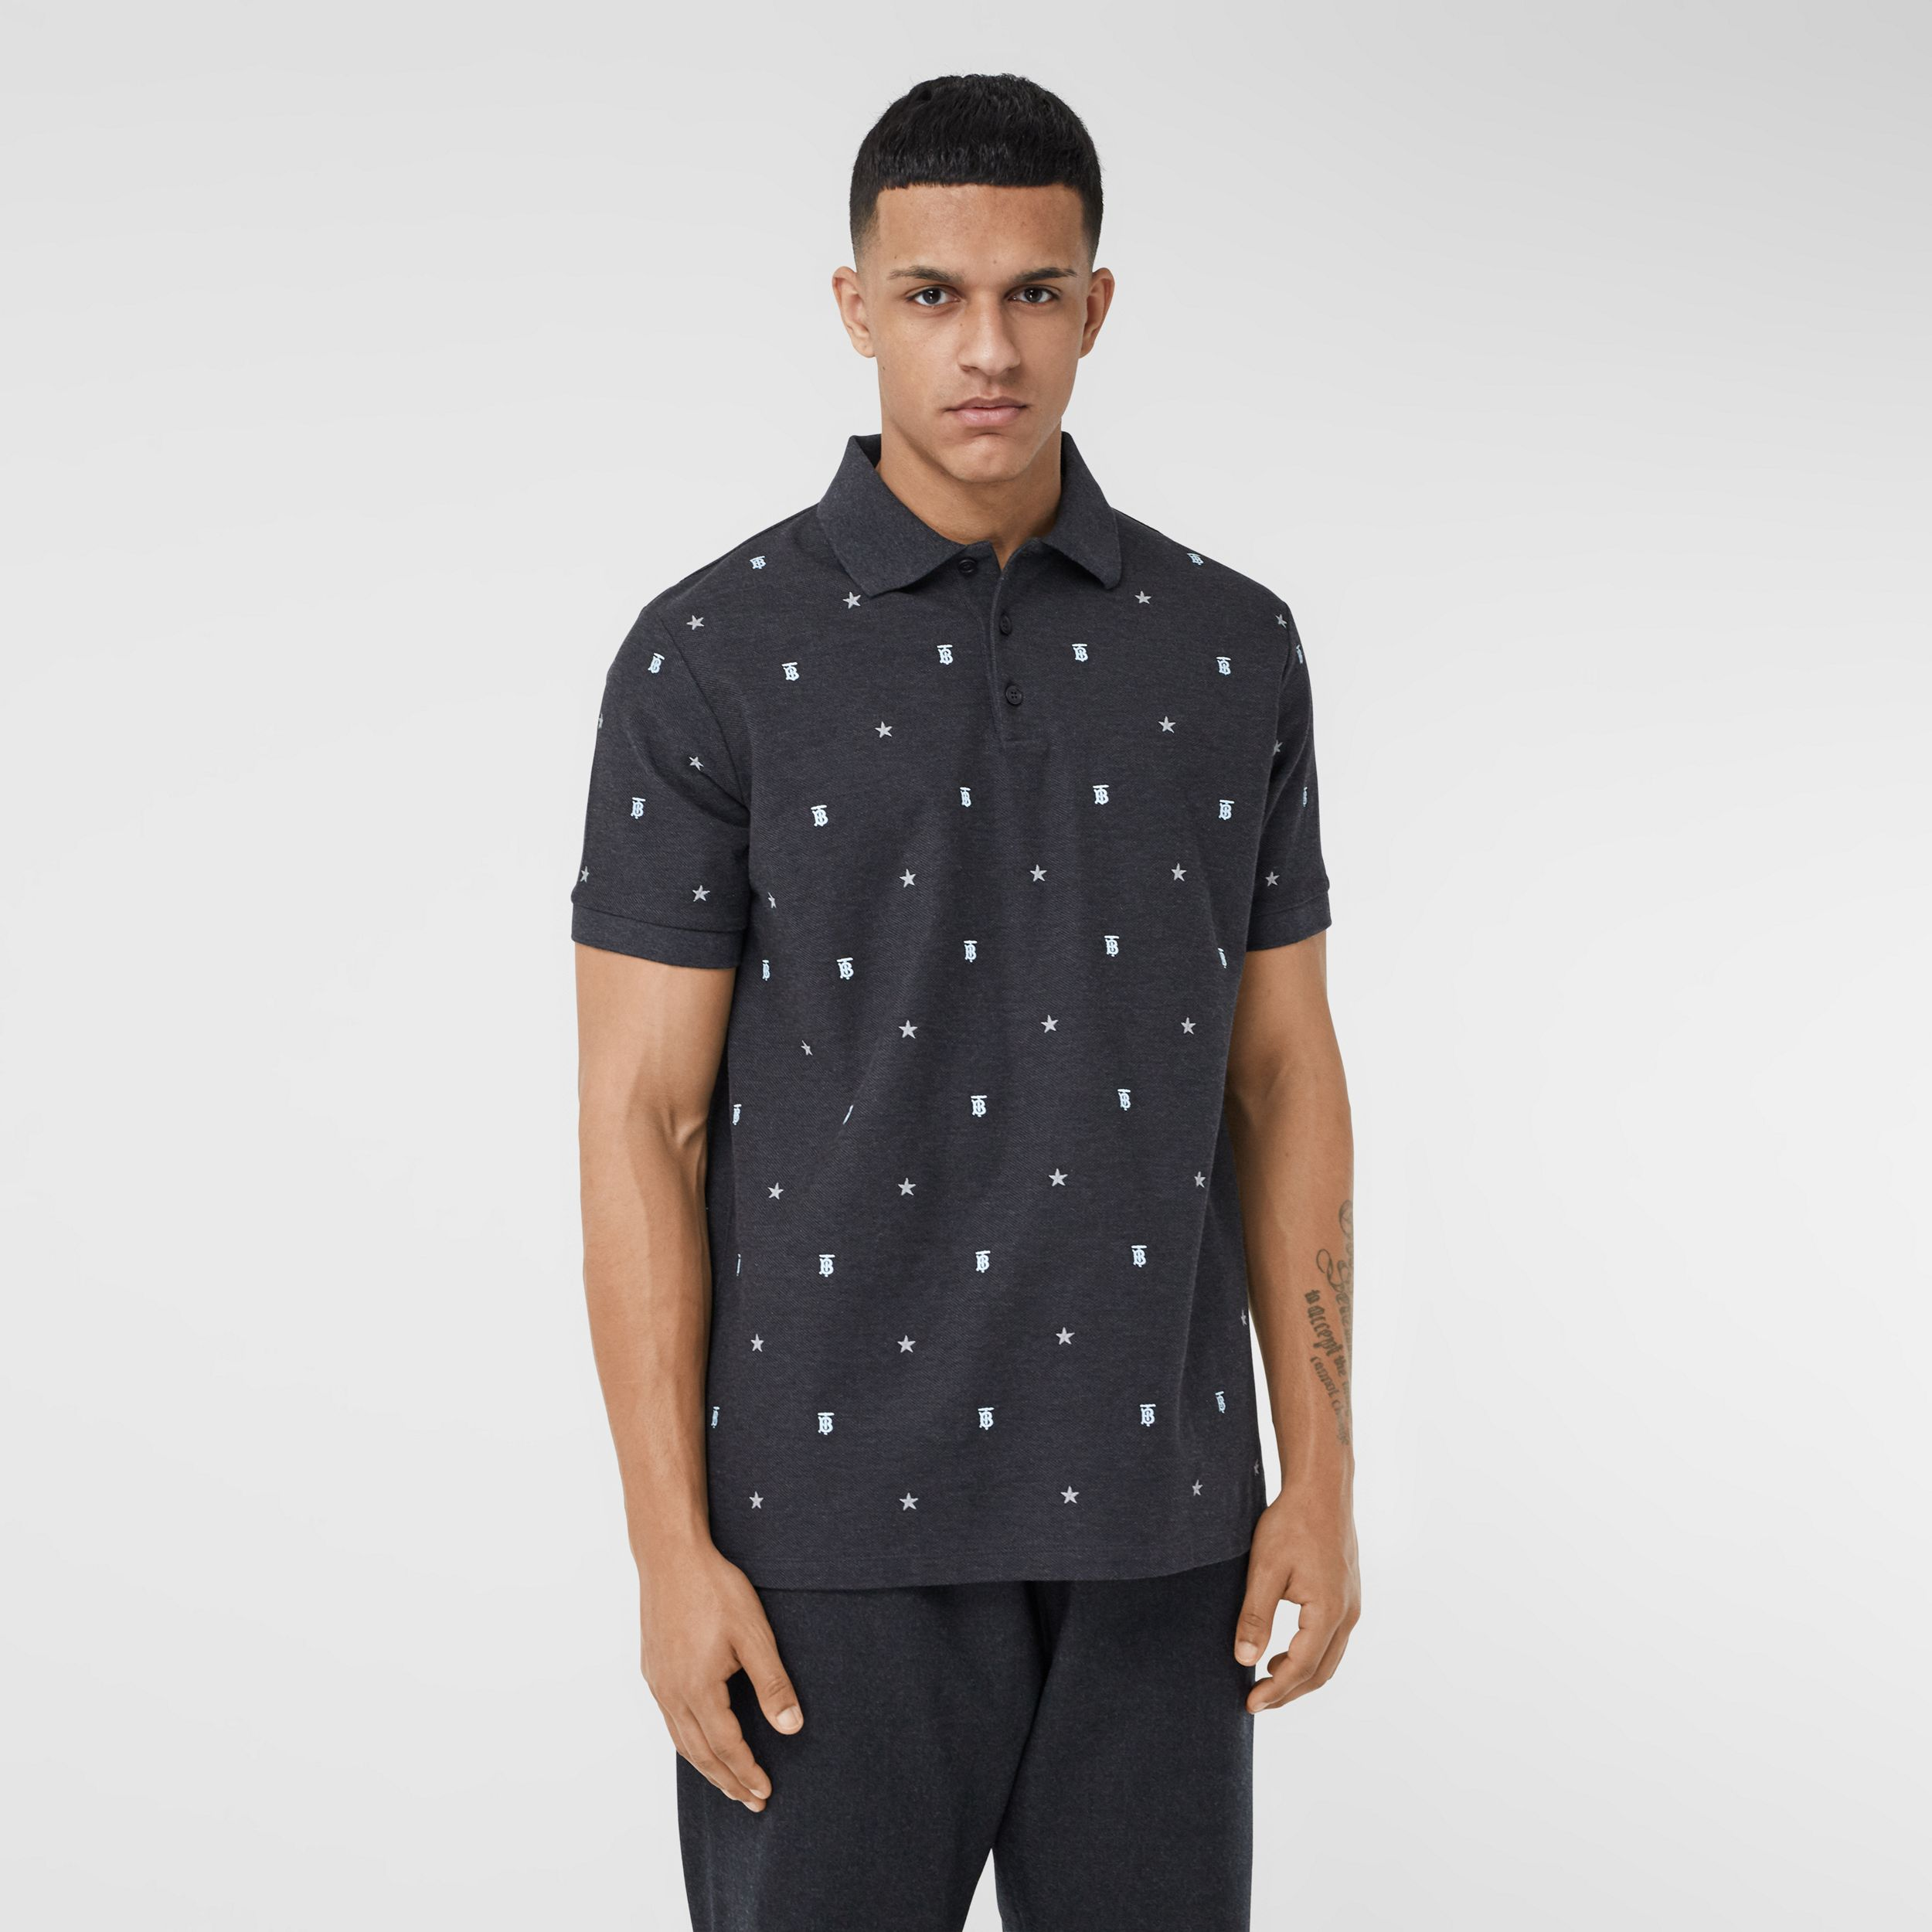 Star and Monogram Motif Cotton Piqué Polo Shirt in Charcoal Melange - Men | Burberry - 1